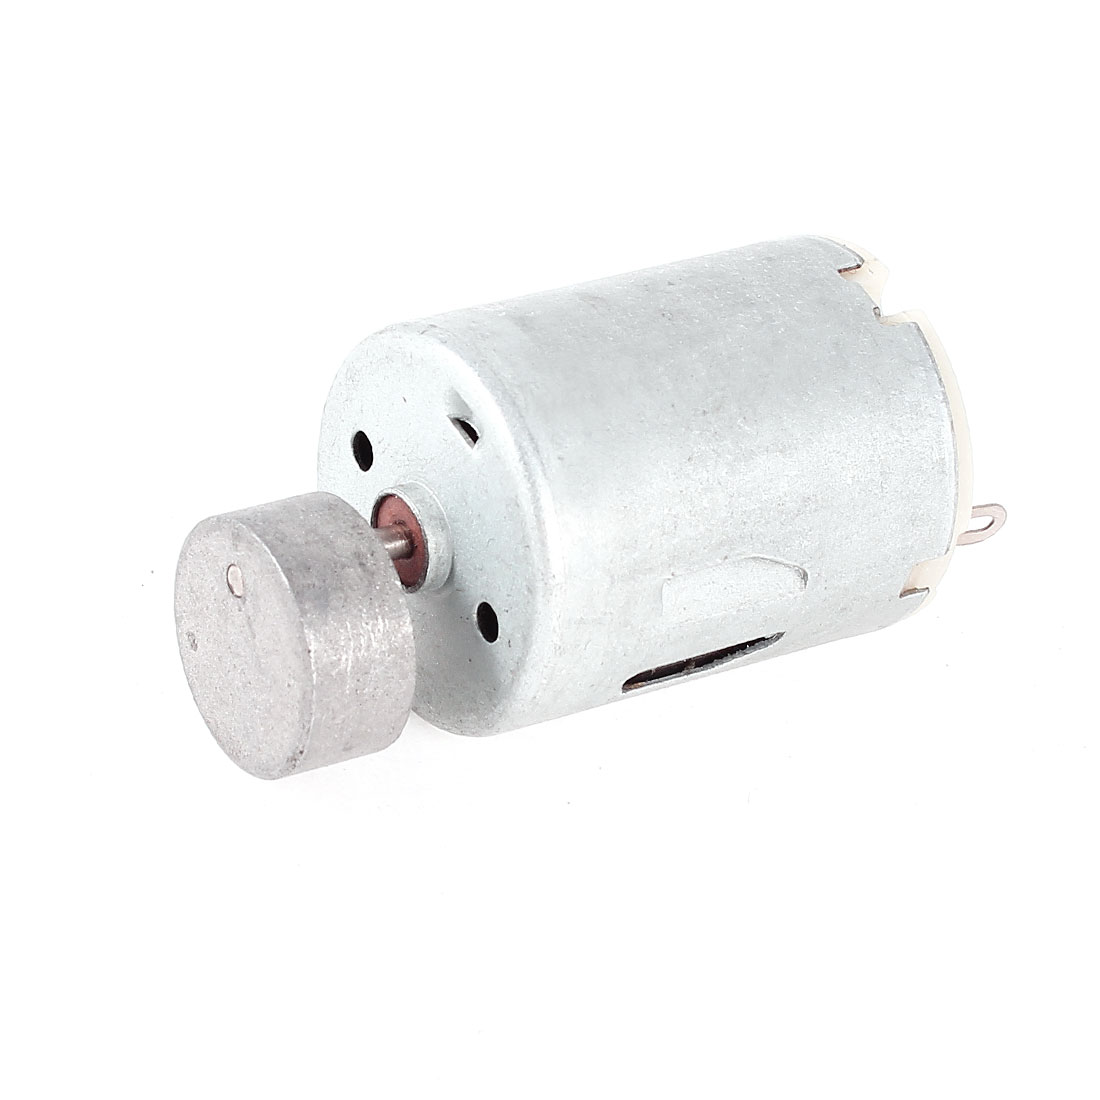 25mm Dia Mini Vibration Vibrating Electric Motor DC 3-6V 12000RPM 280 Model for Toys